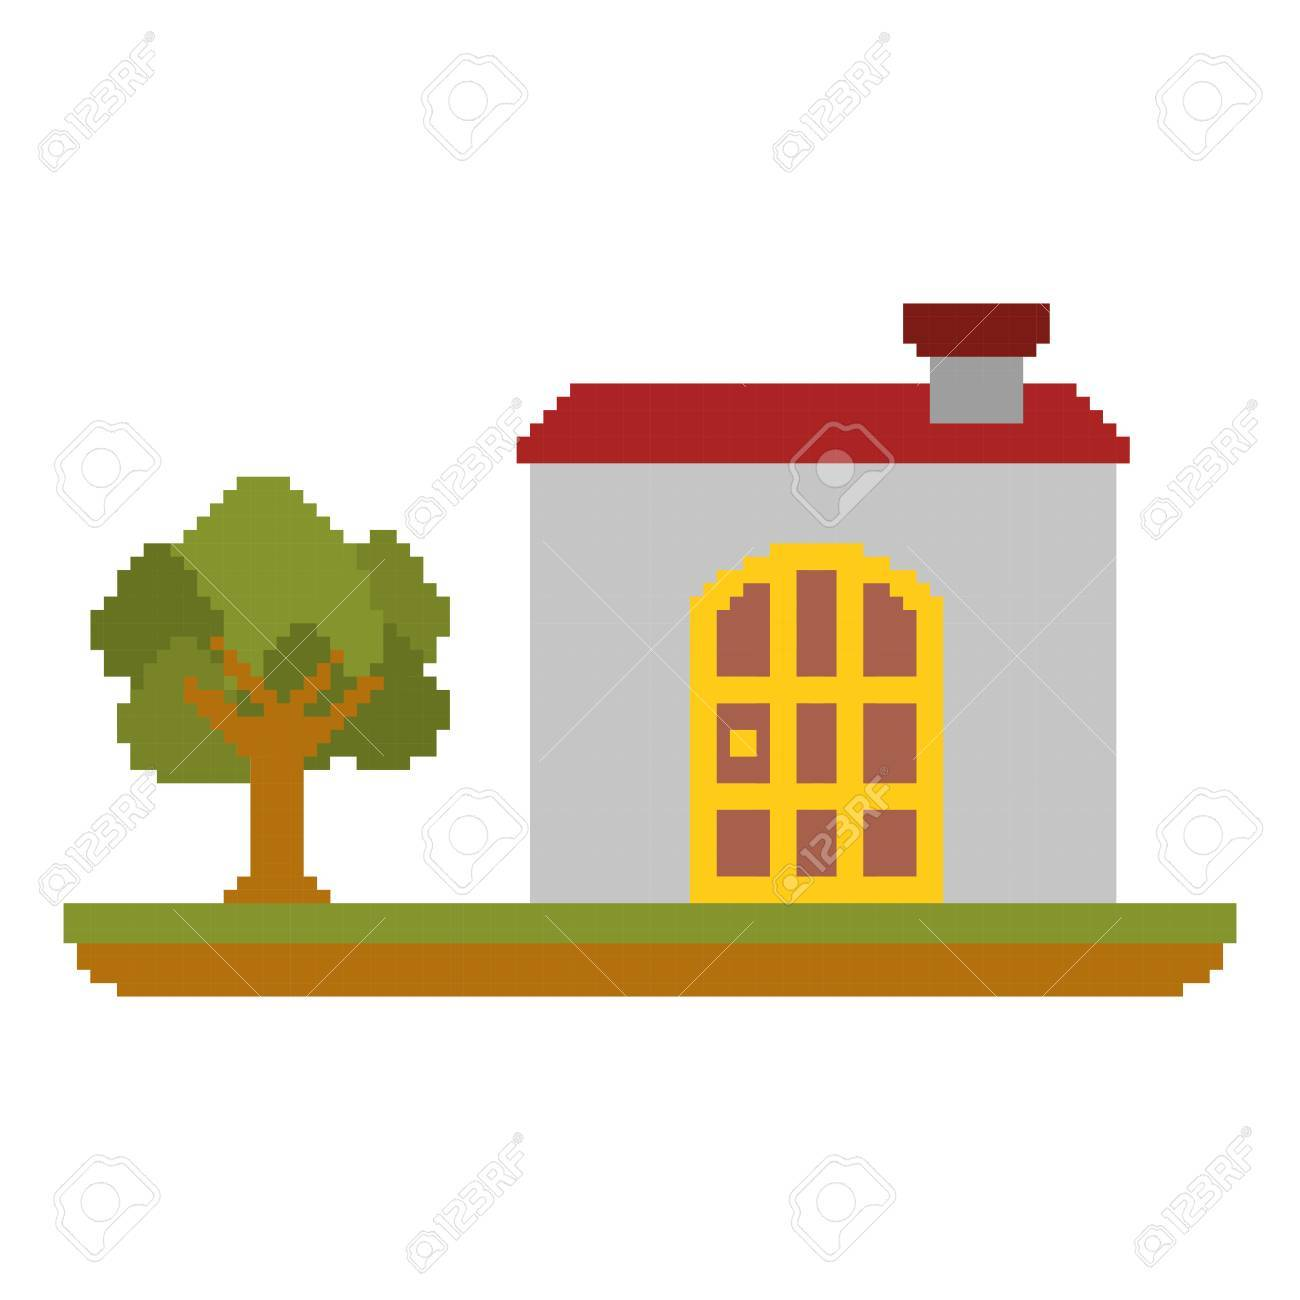 colorful pixelated house in meadow with tree vector illustration rh 123rf com